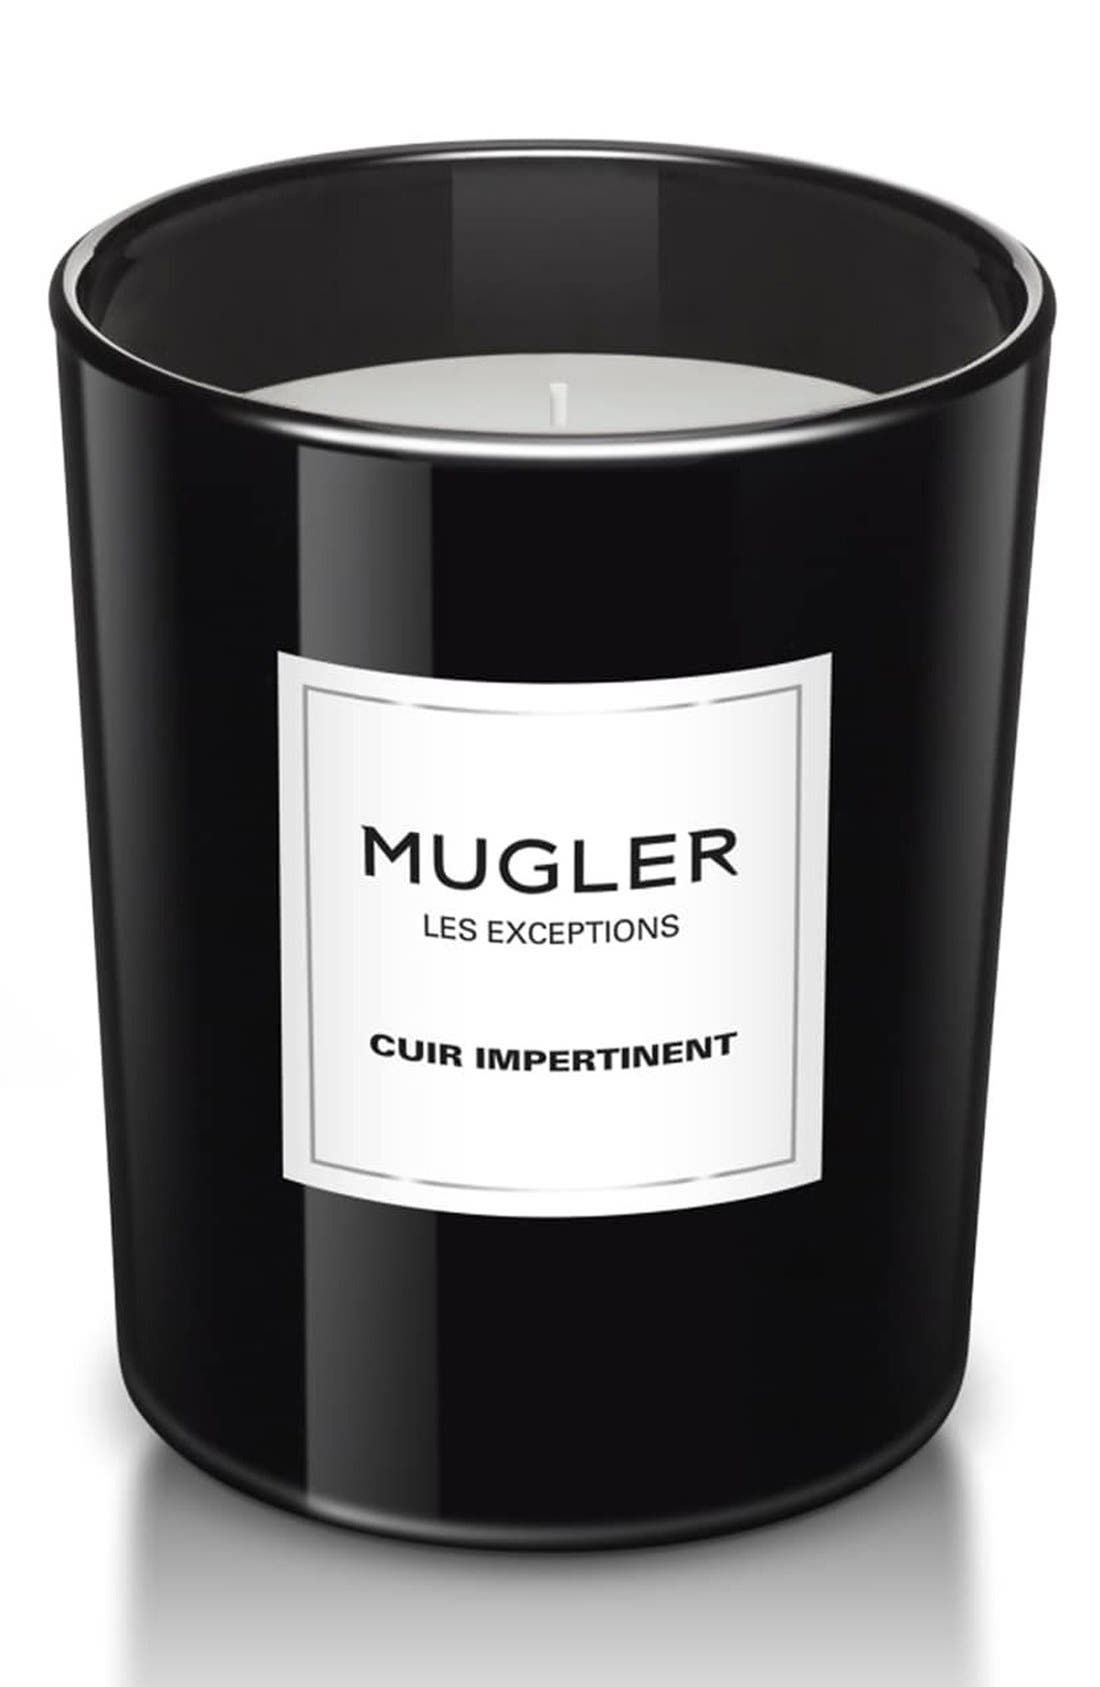 Mugler 'Les Exceptions - Cuir Impertinent' Candle